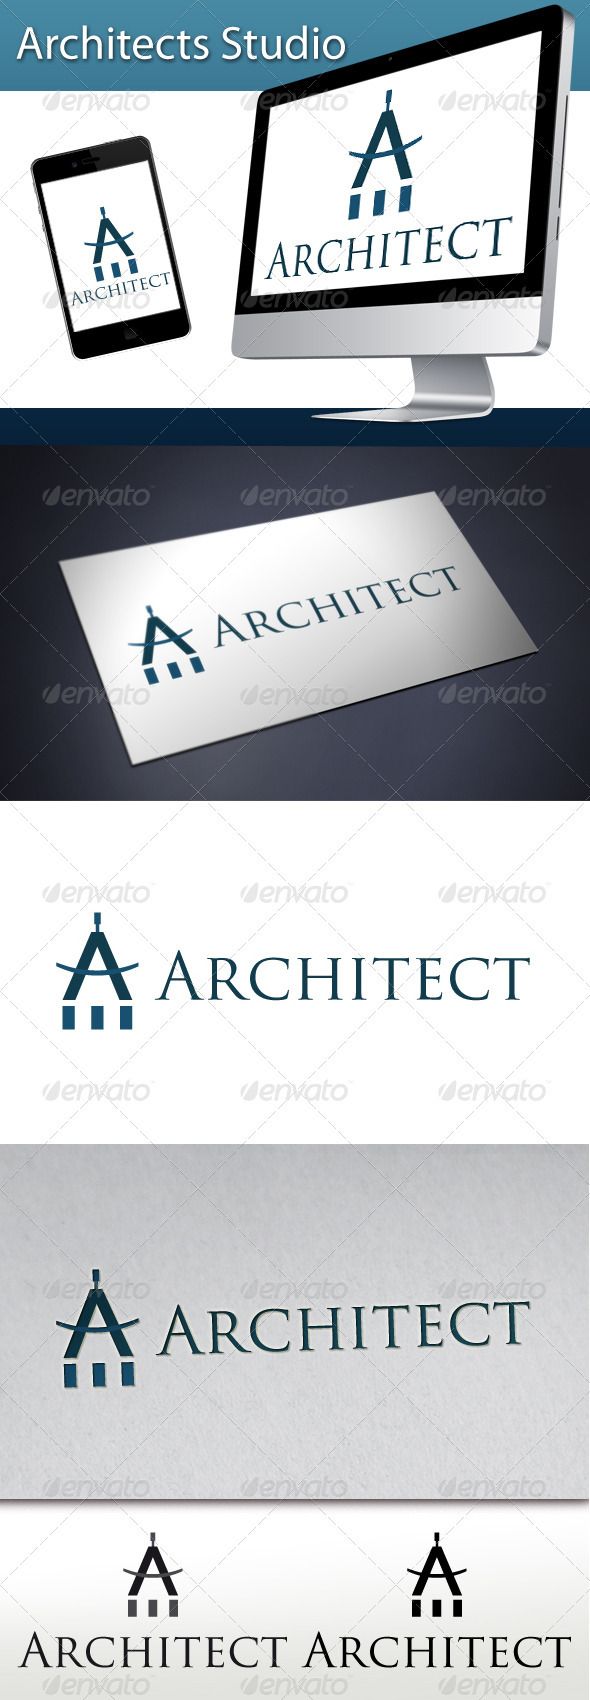 Architects Studio Logo 1 - Letters Logo Templates